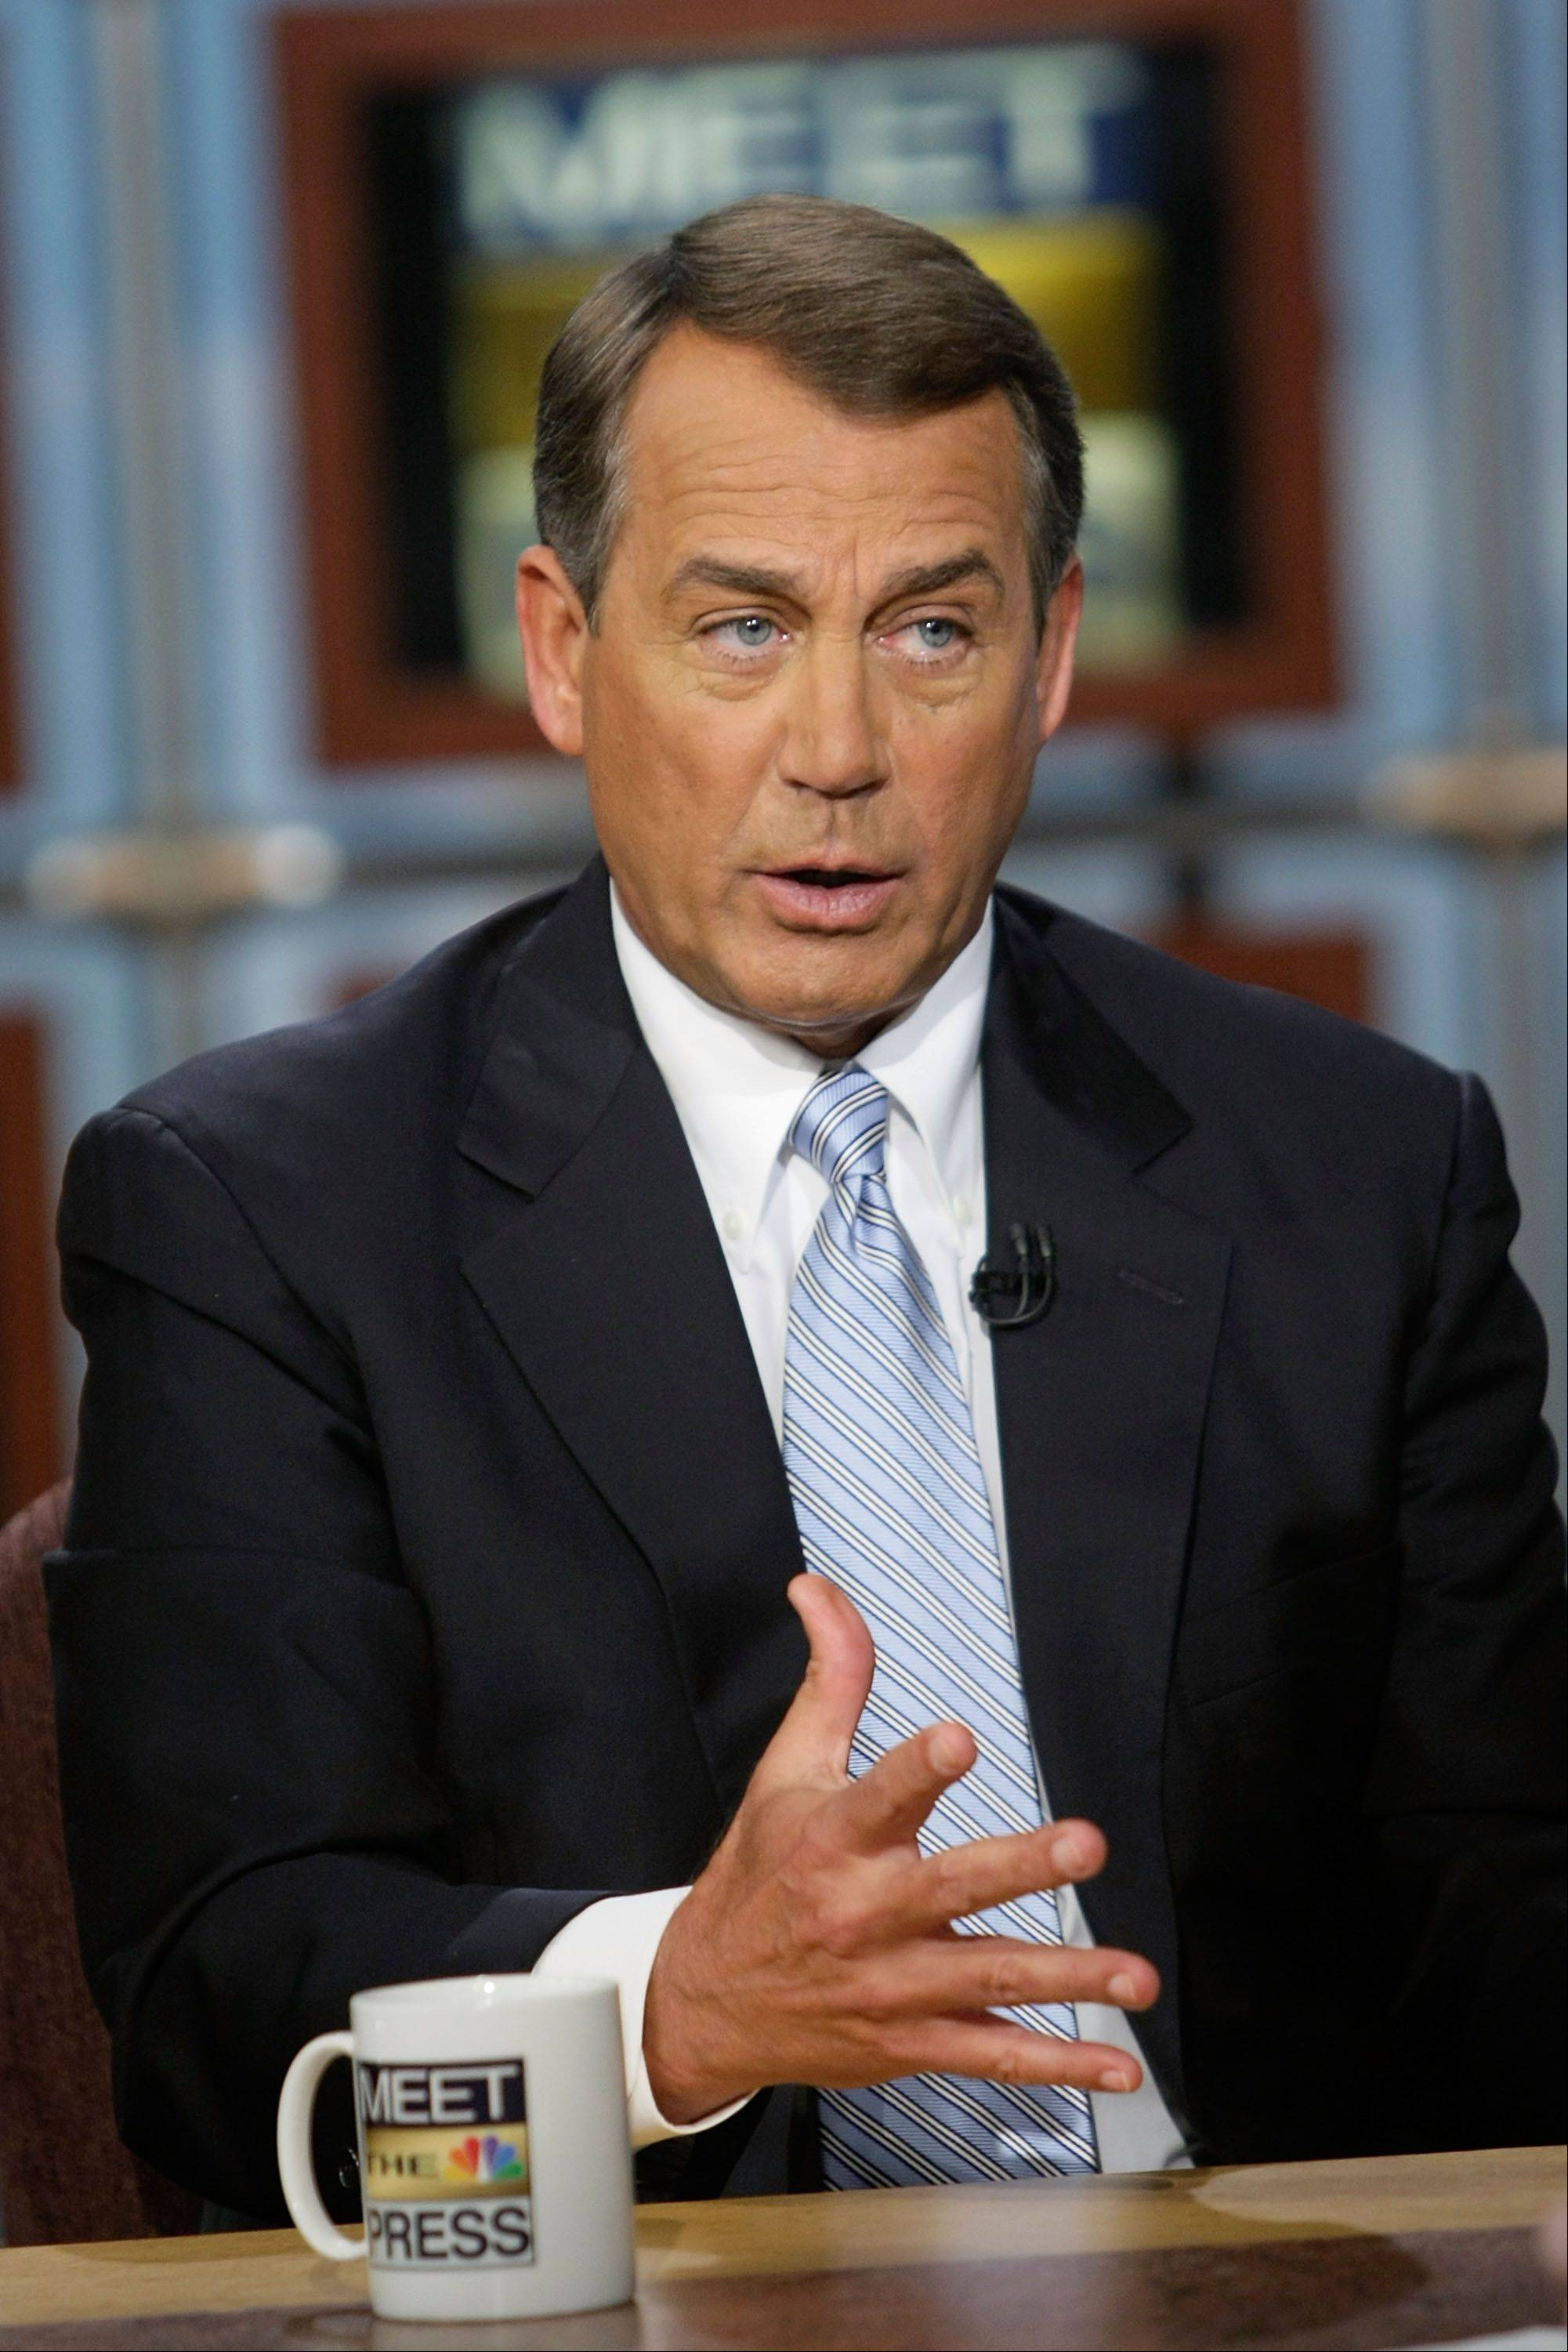 Boehner: Health ruling shows need to repeal law